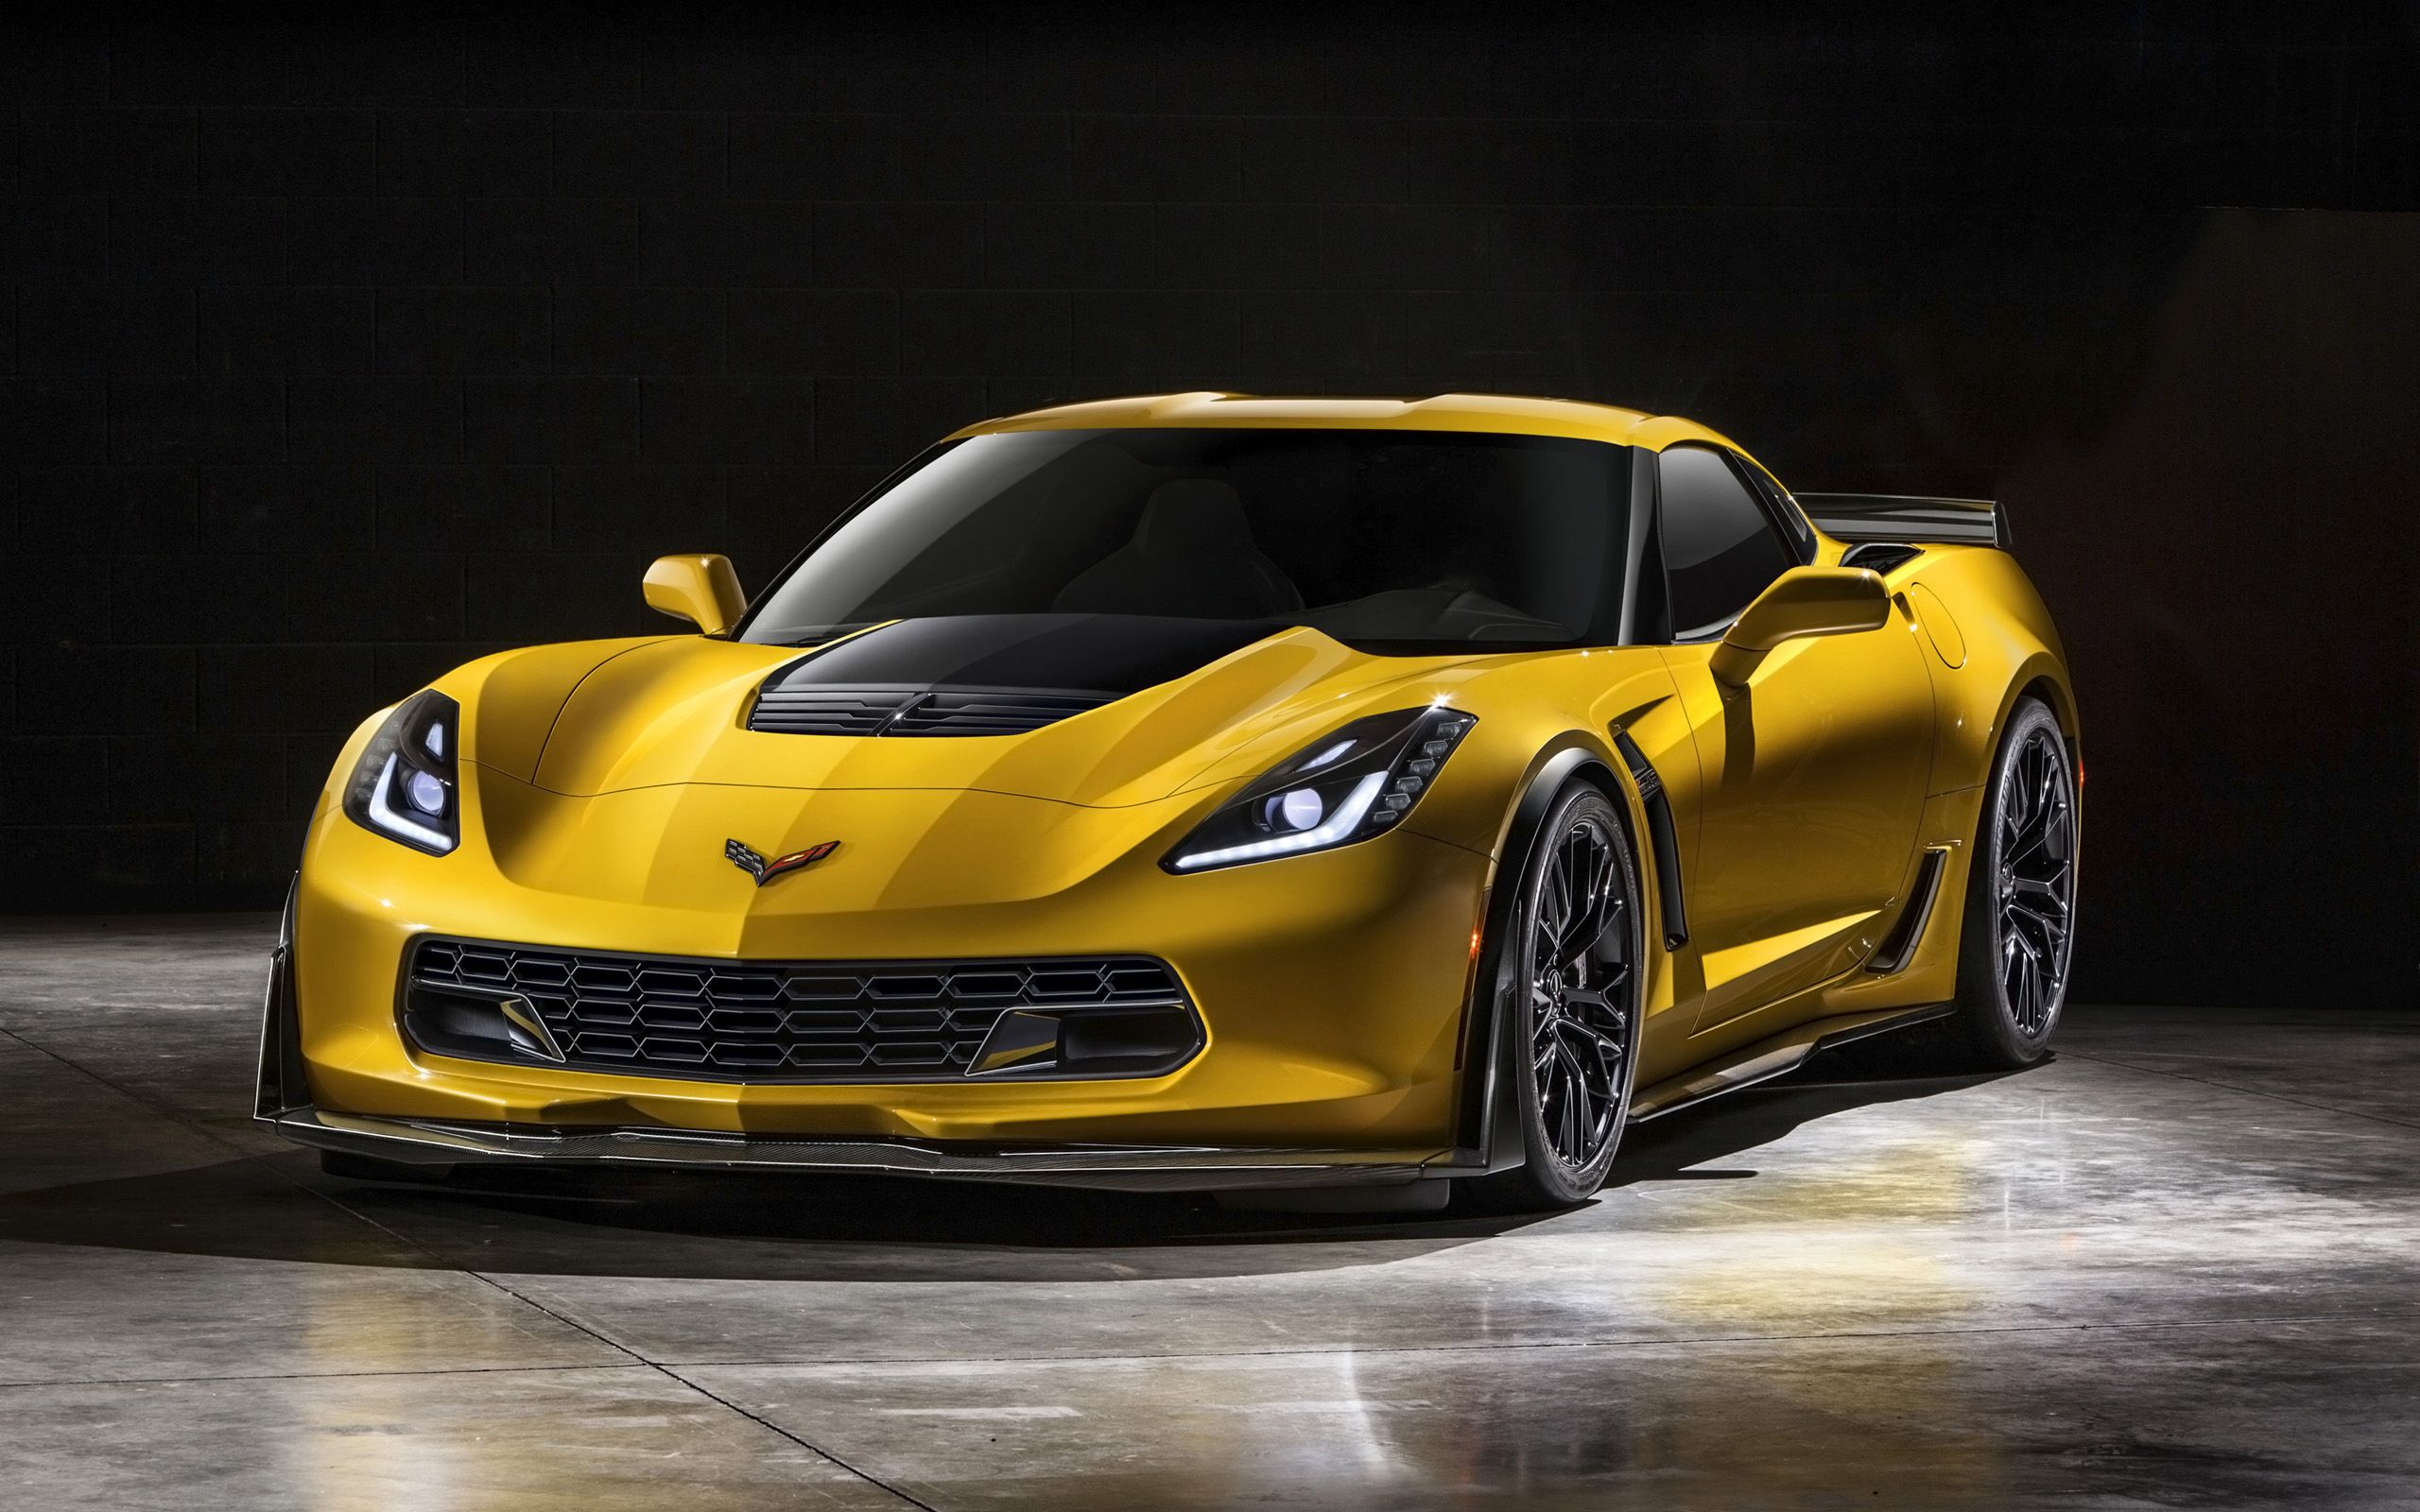 Chevrolet Corvette Z06 2015 Wide Is An Hd Wallpaper Posted In Cars